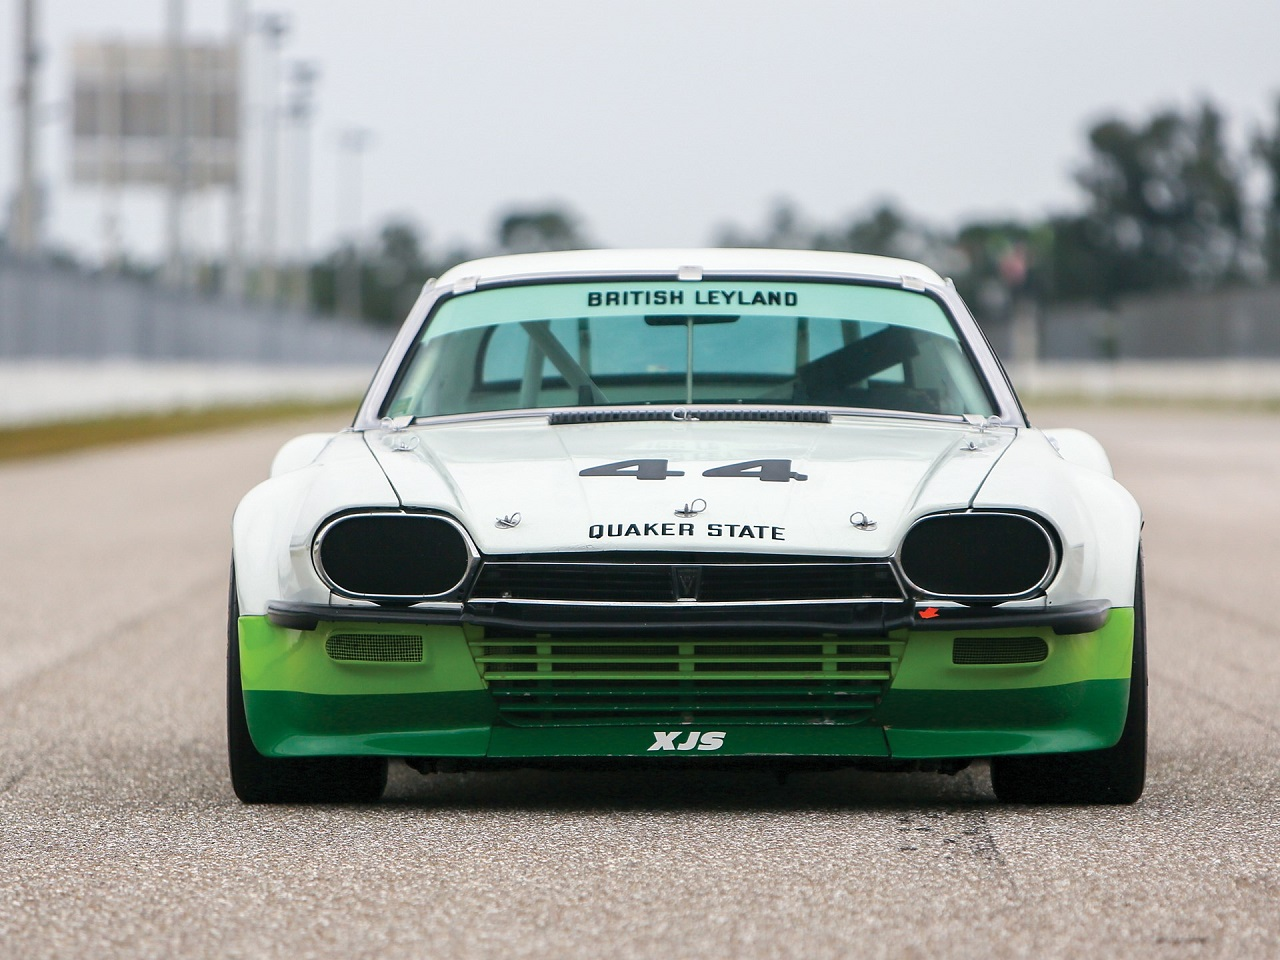 Jaguar XJS Group 44 Trans Am - Prête au combat ! 3